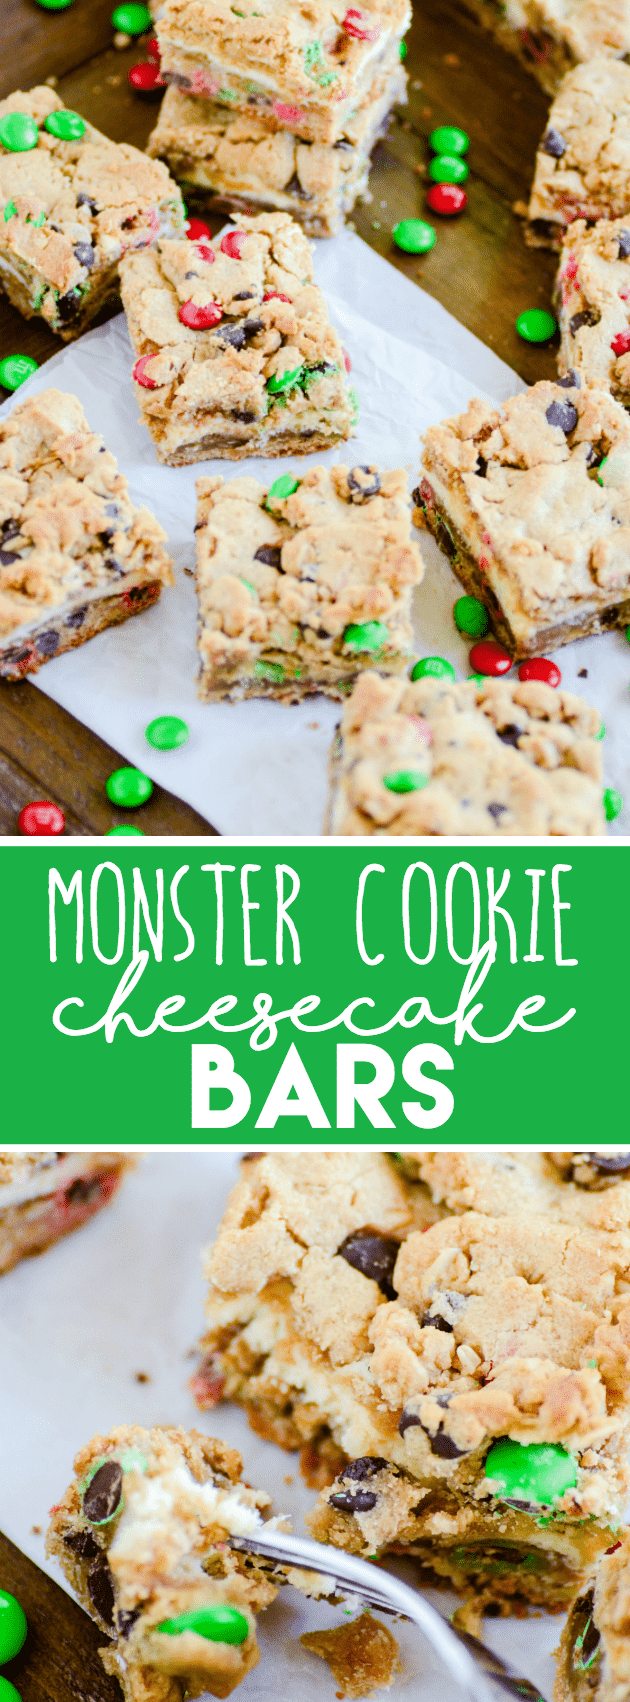 A layer of delicious, creamy cheesecake in between two layers of monster cookies.